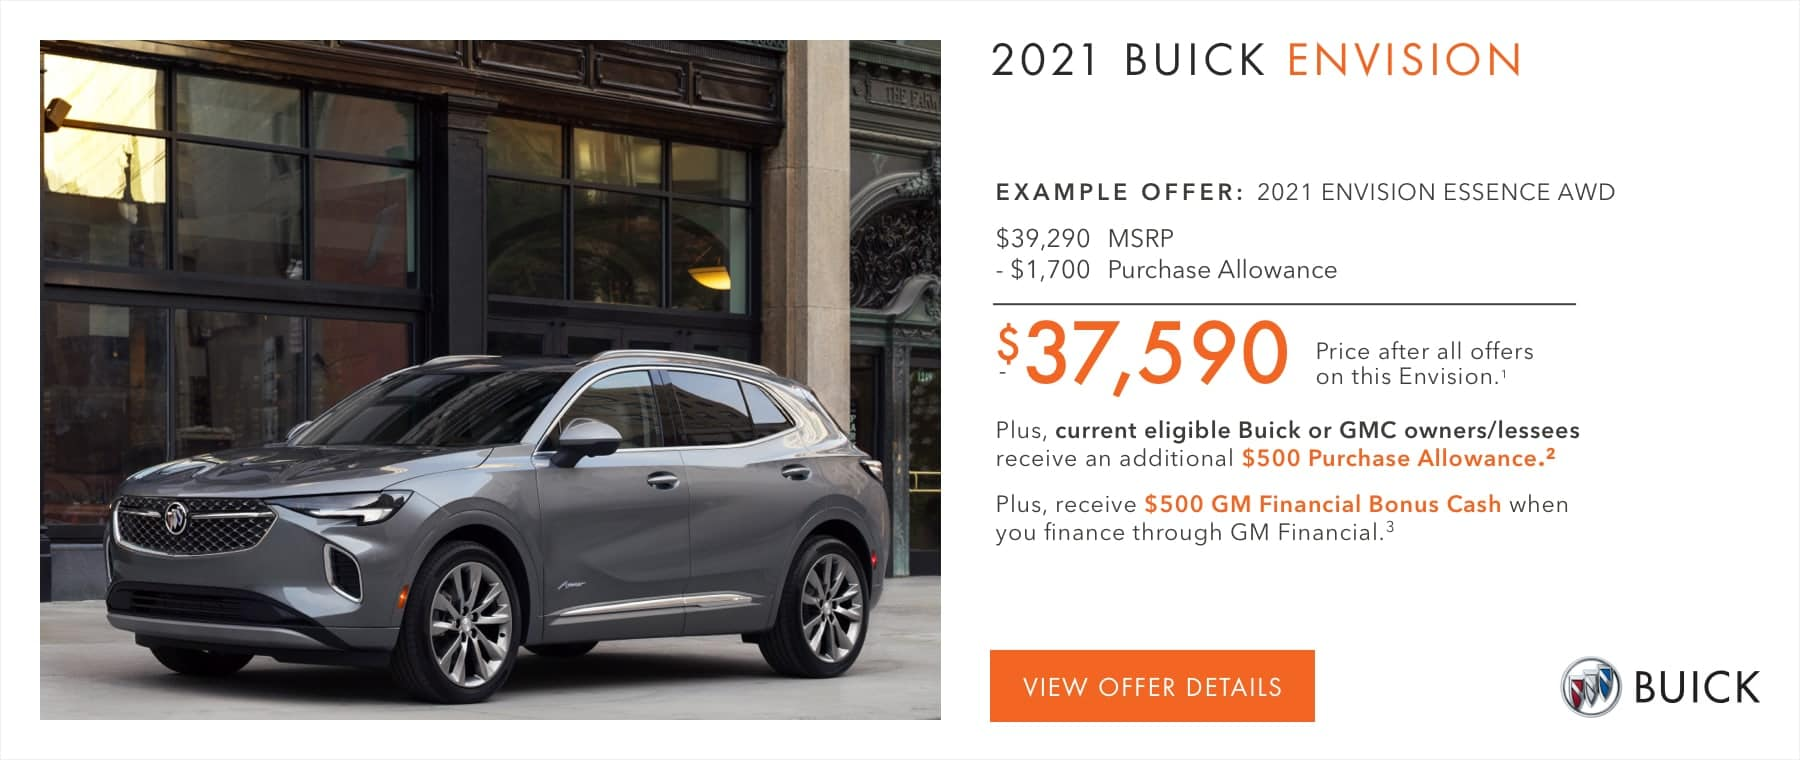 EXAMPLE OFFER: 2021 ENVISION ESSENCE AWD $39,290 MSRP -$1,700 Purchase Allowance $37,590 Price after all offers on this Envision.1 Plus, current eligible Buick or GMC owners/lessees receive an additional $500 Purchase Allowance.2 Plus, receive $500 GM Financial Bonus Cash when you finance through GM Financial.3